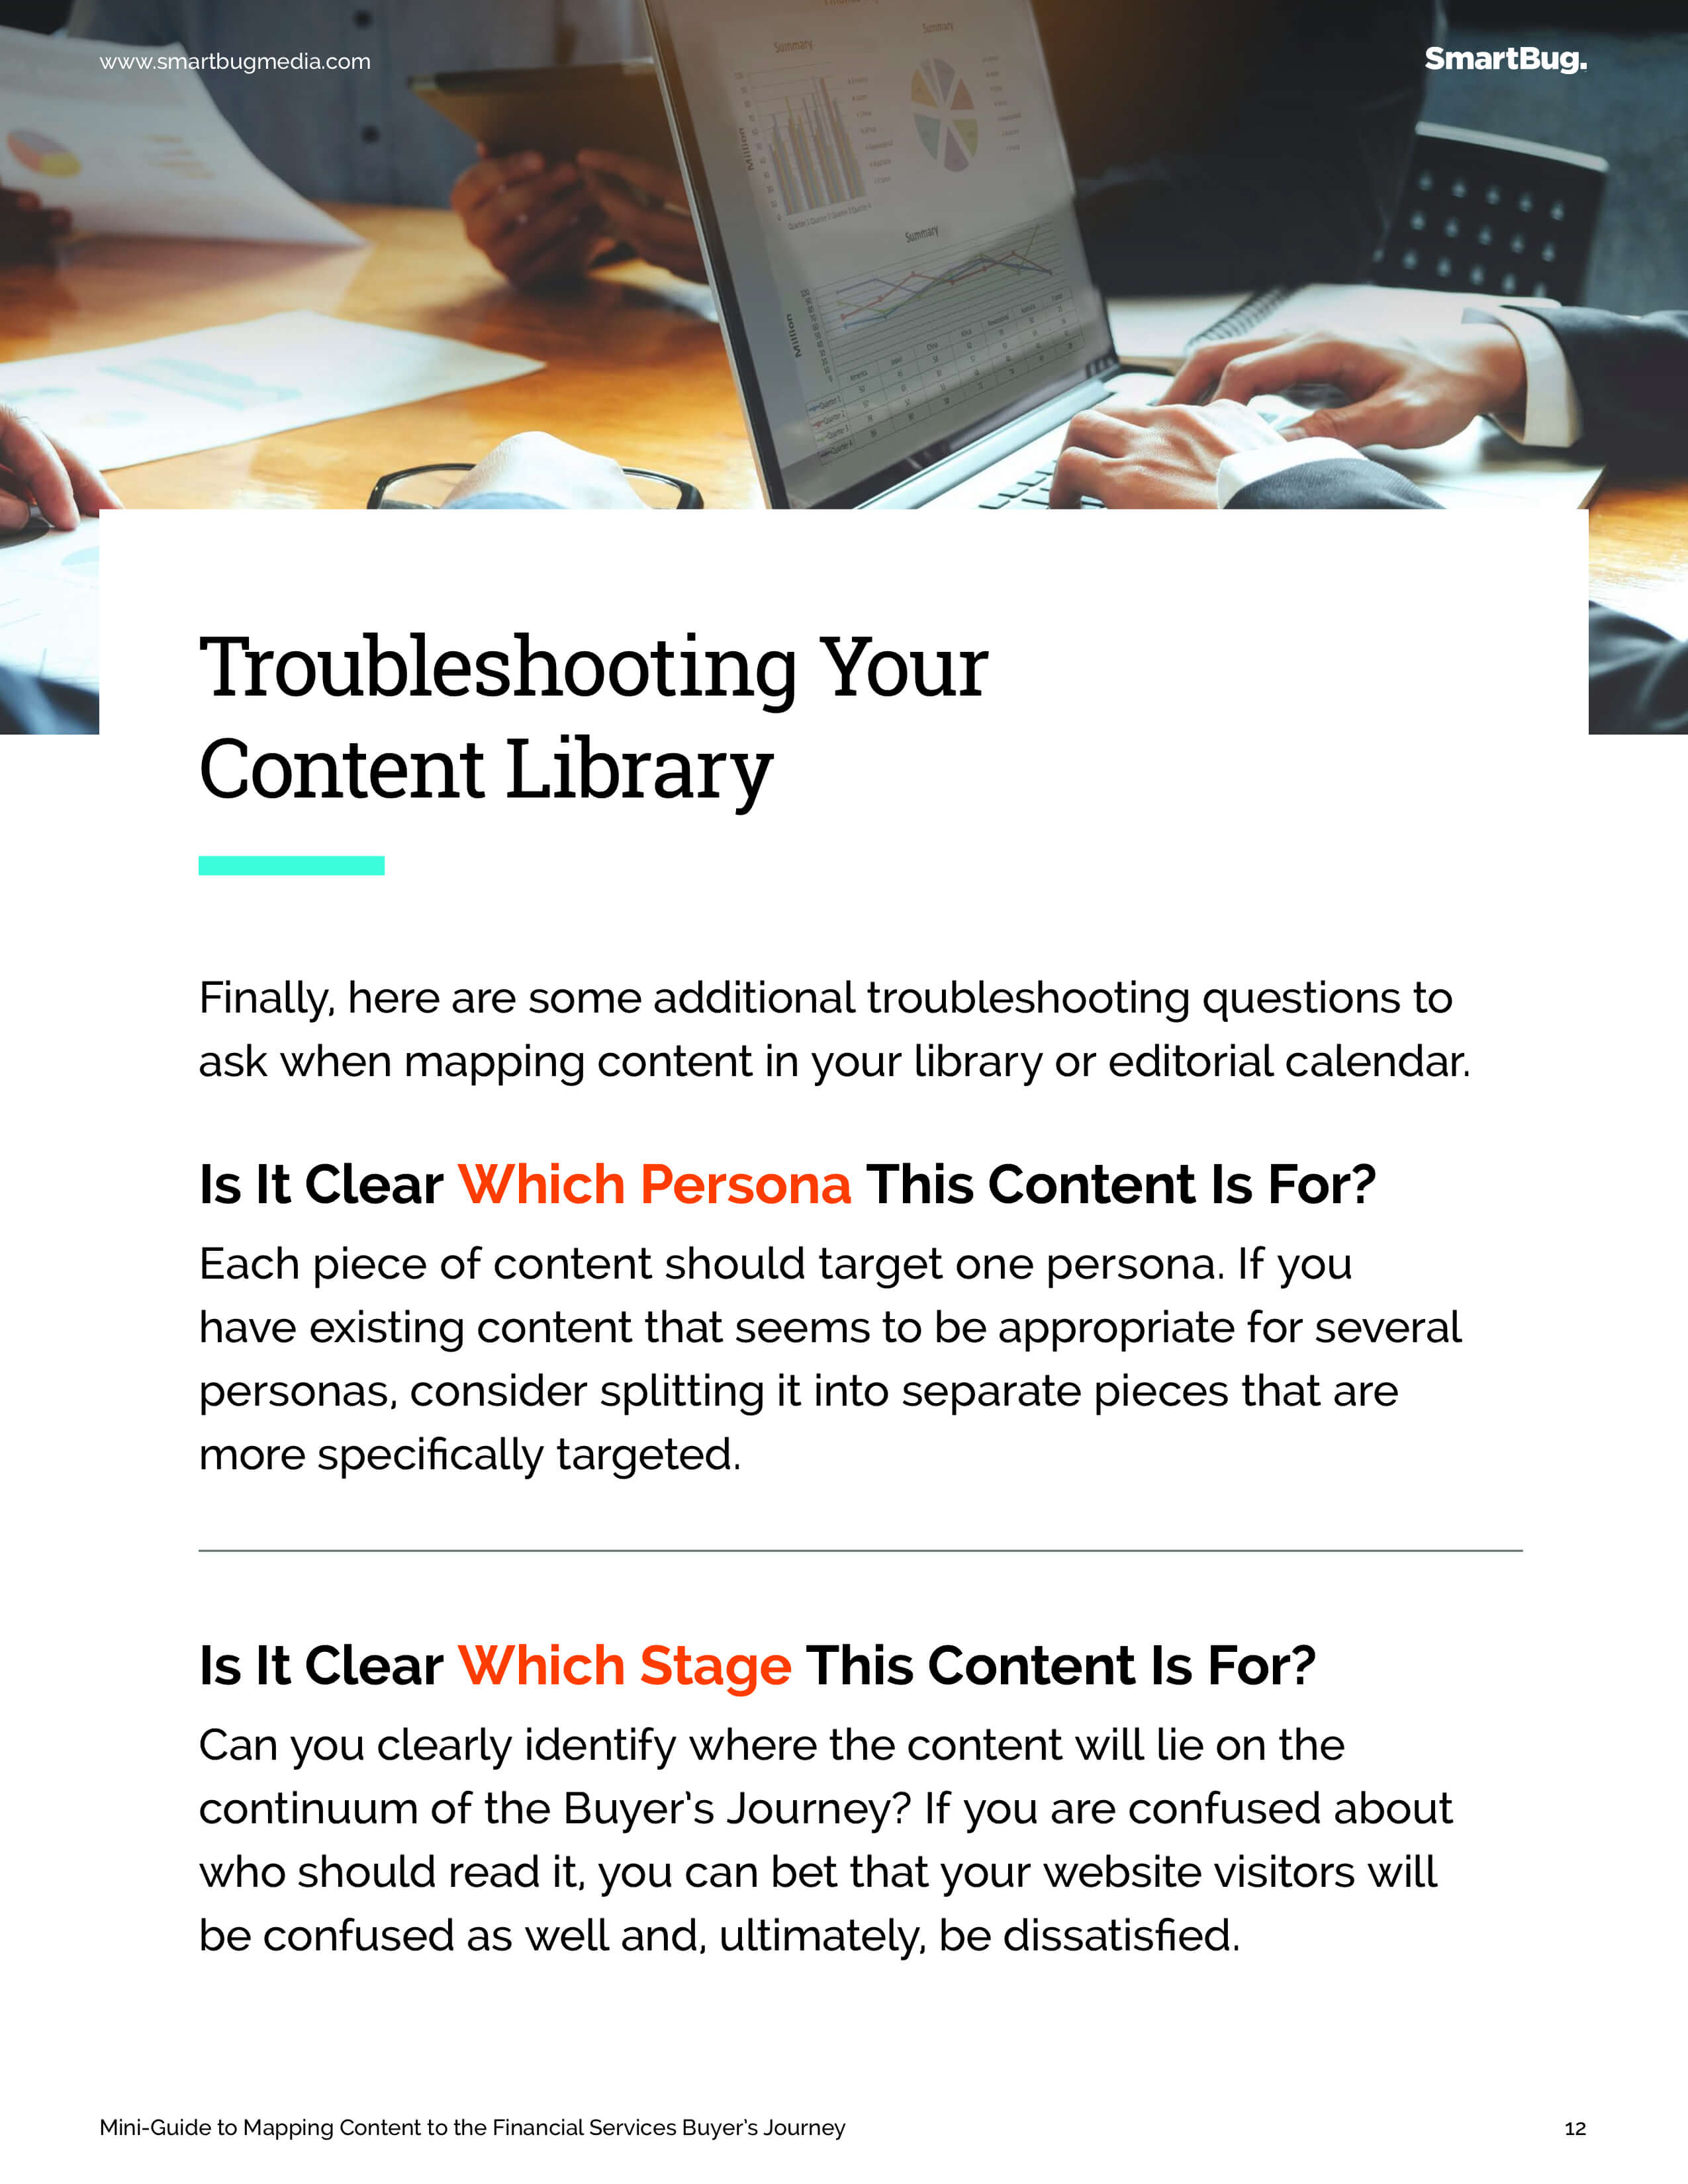 Audit your content library